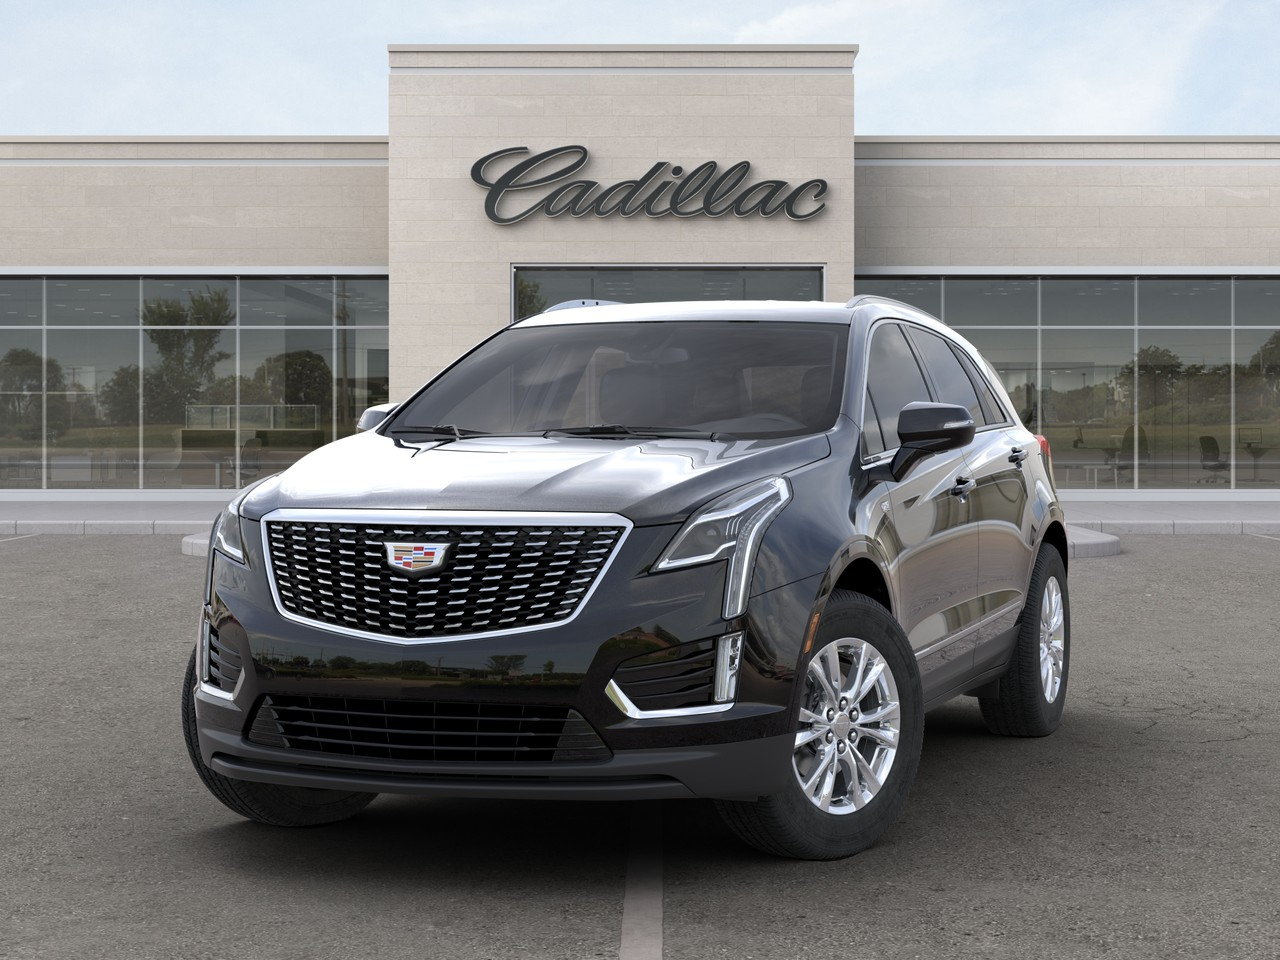 2020 CADILLAC XT5 Luxury Crossover